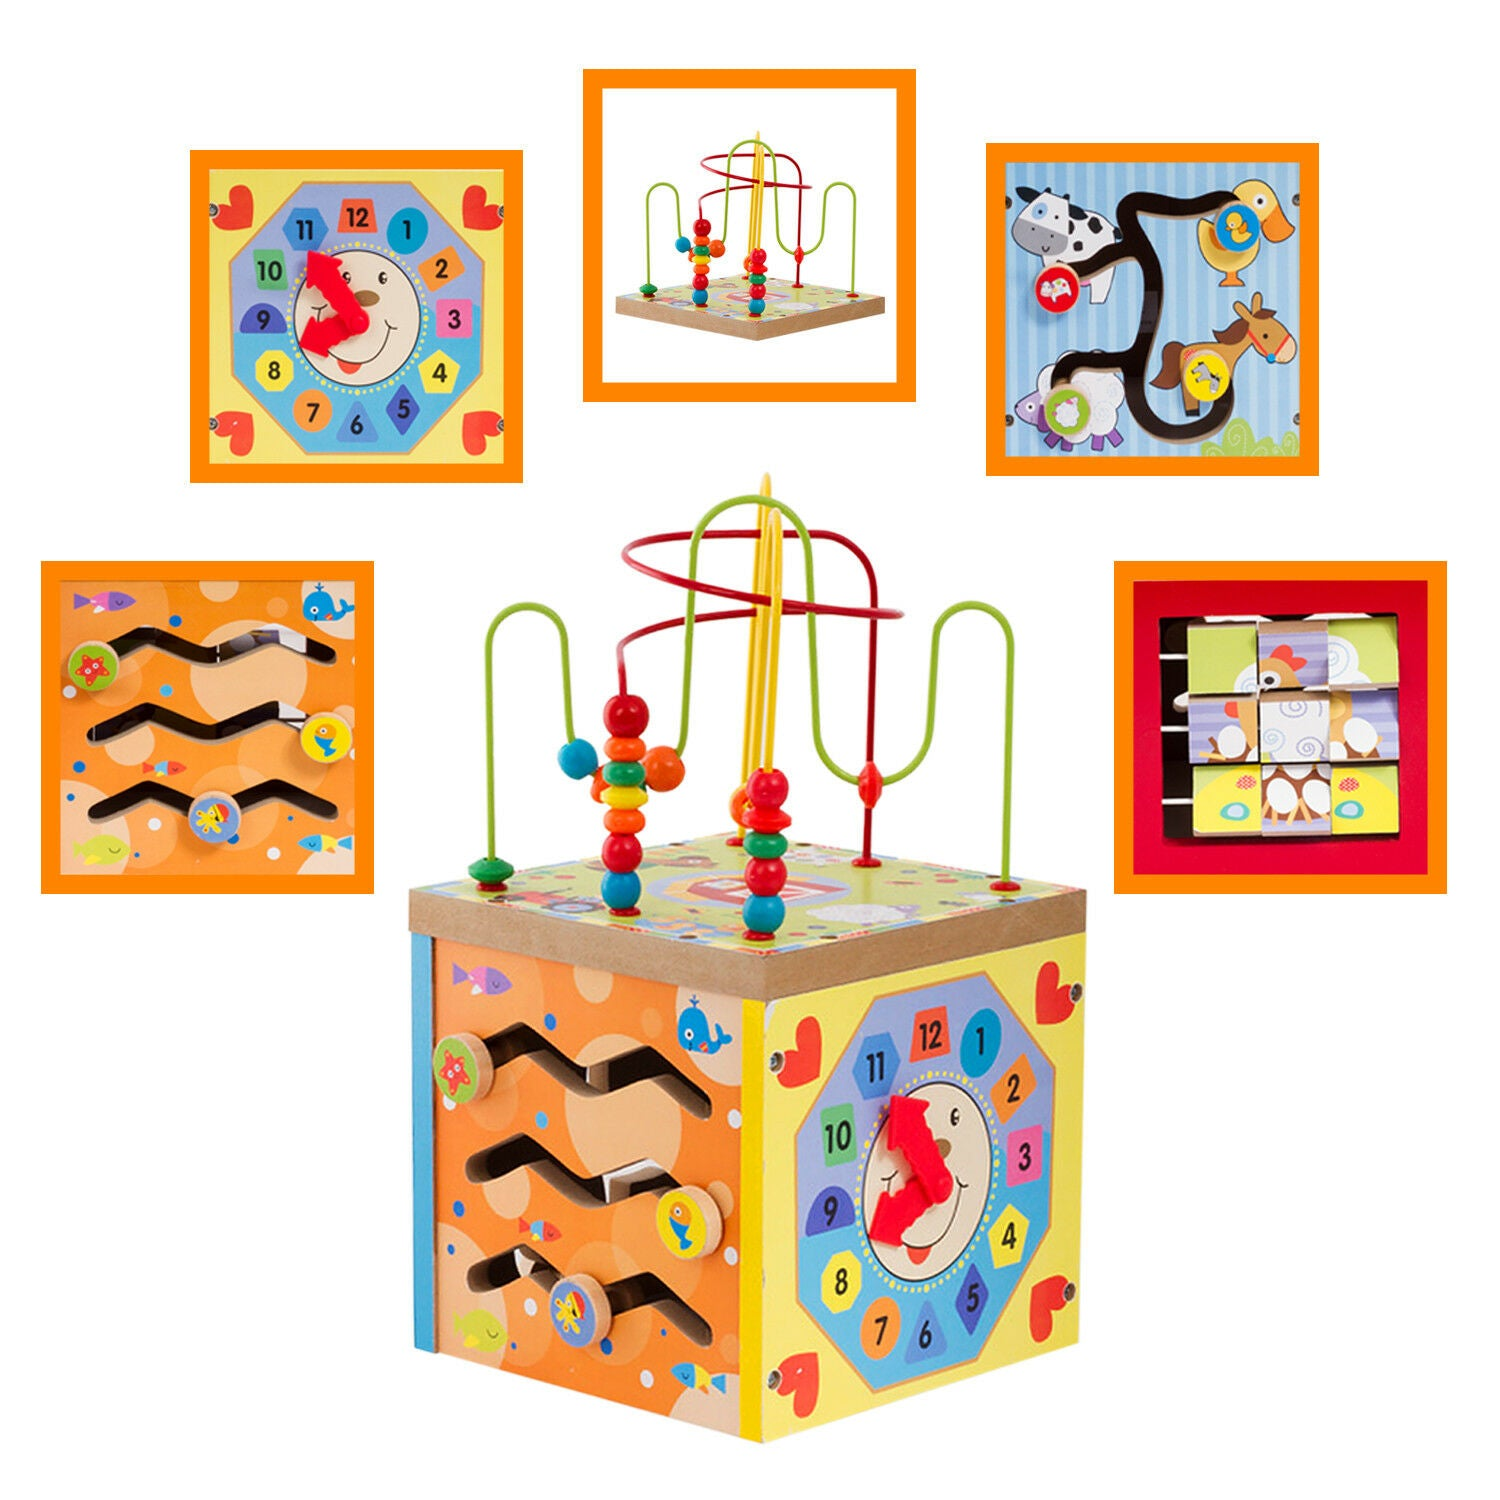 Wooden Multi Function 5 in 1 Kids Learning Game Center Wood Baby Activity Center